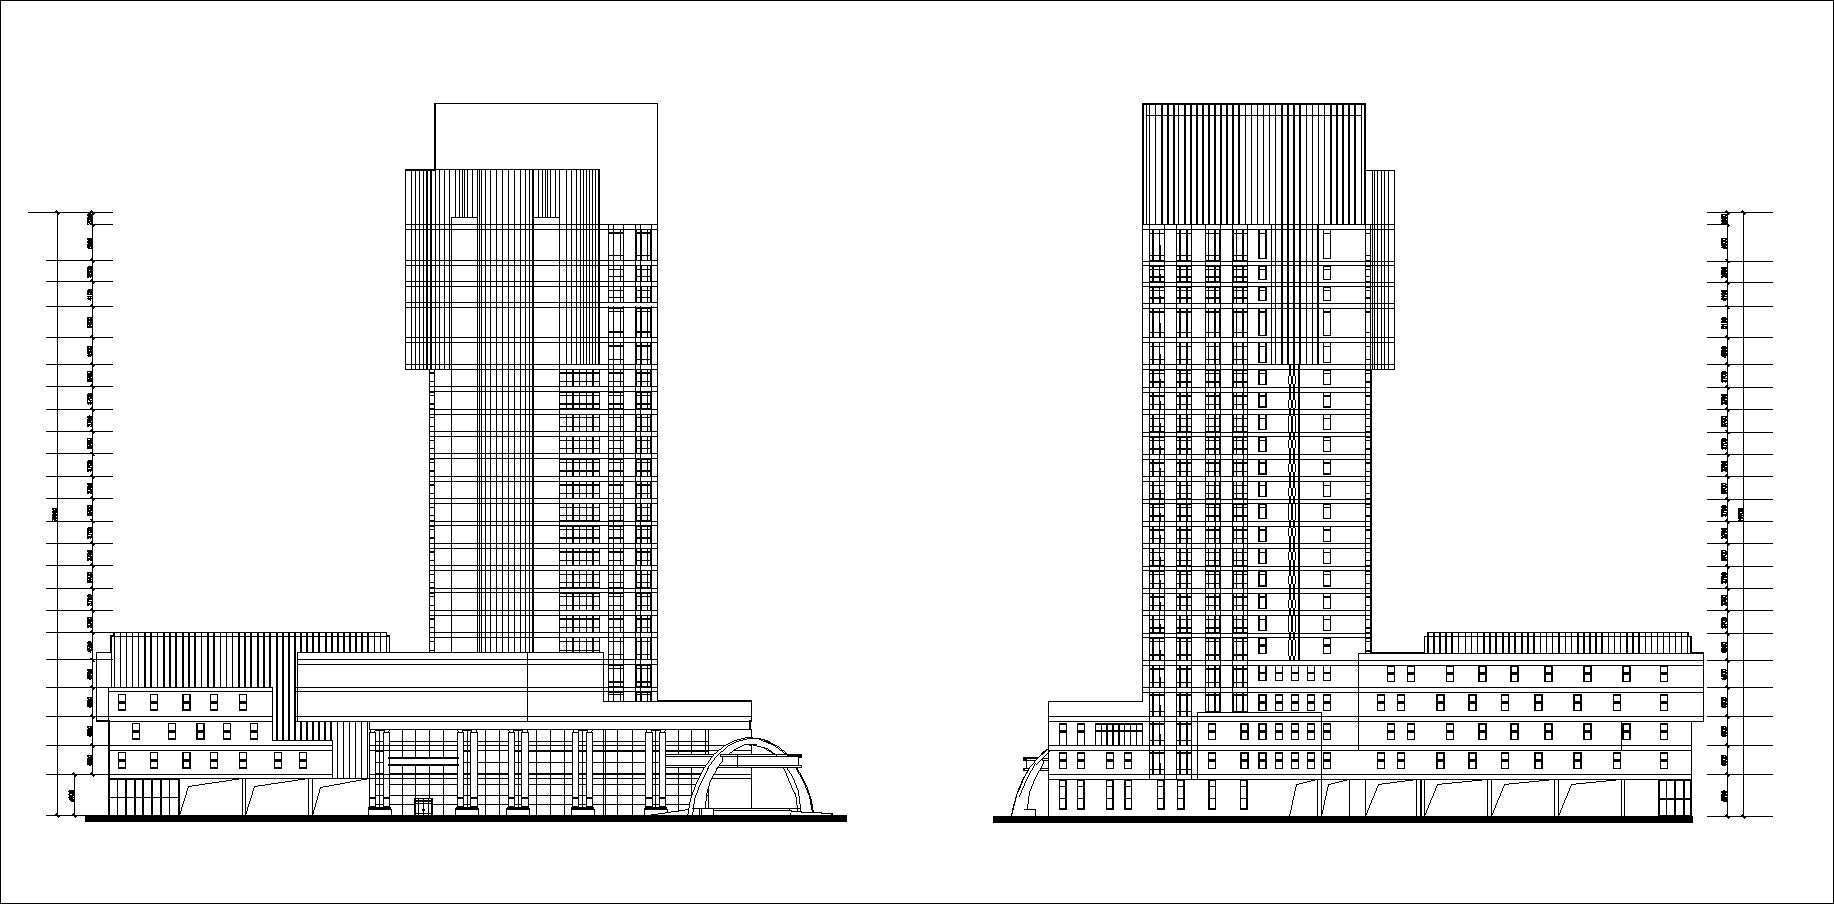 5 Star Hotel Cad Drawings 1